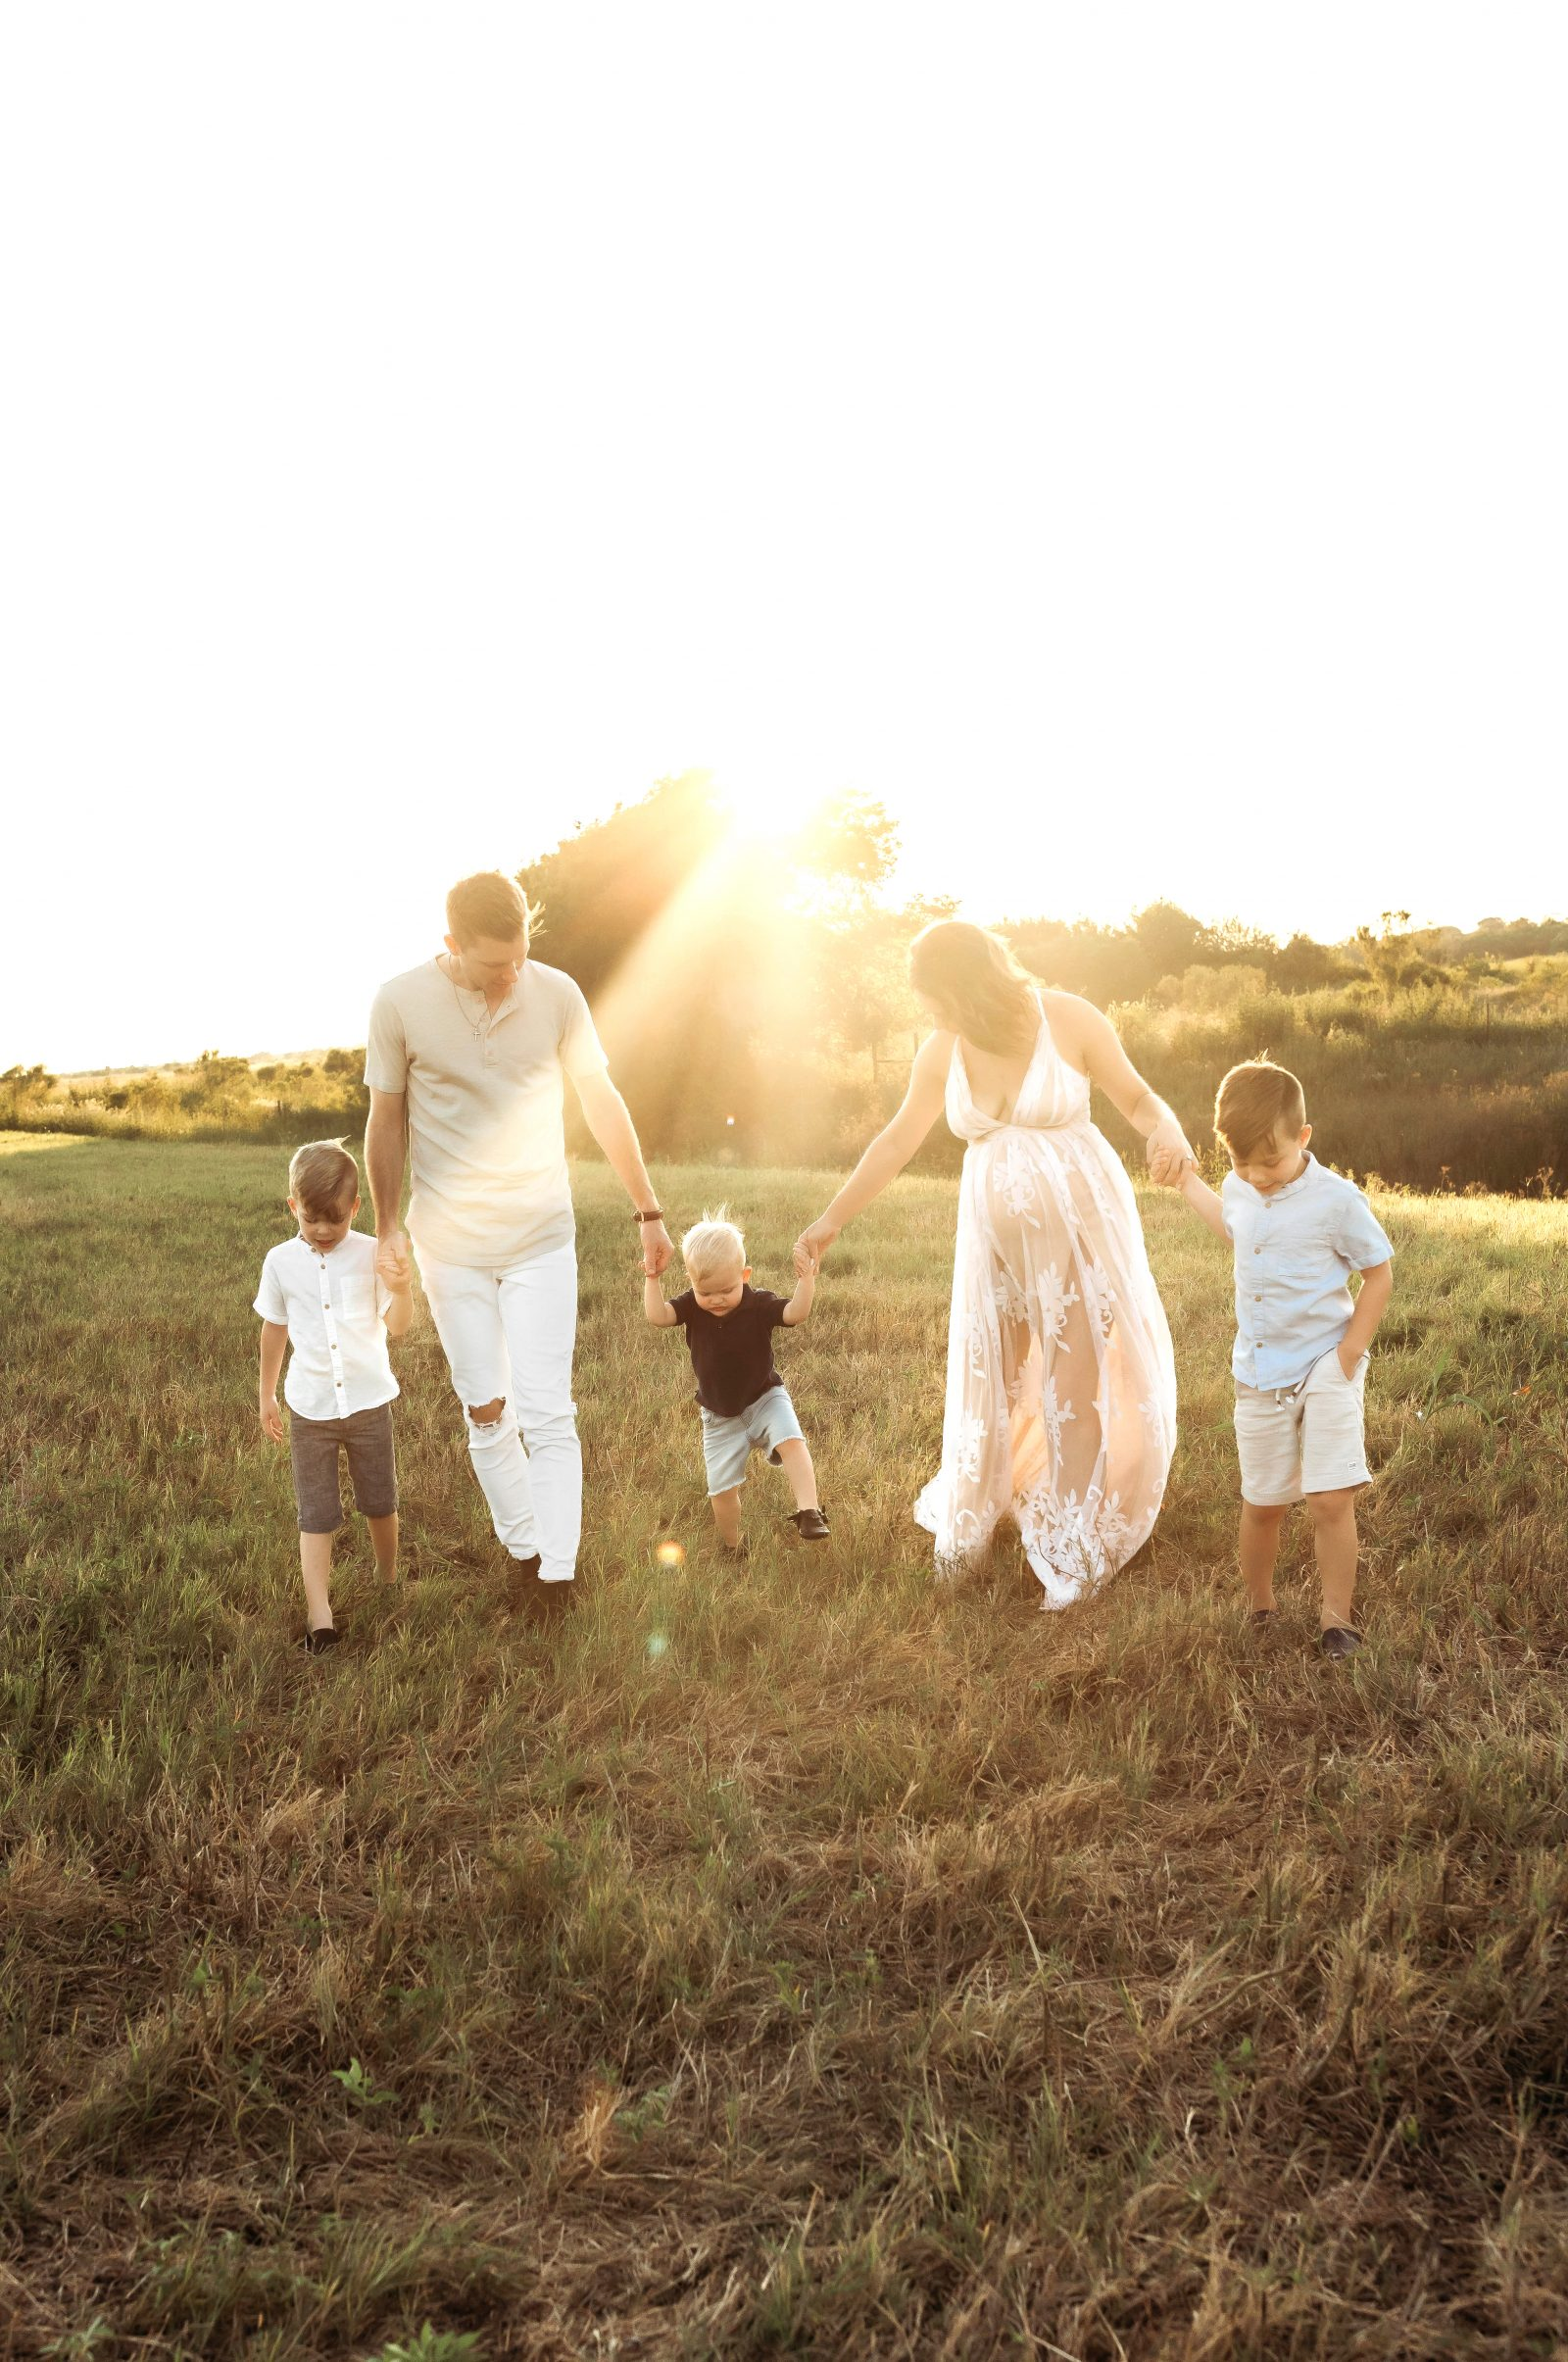 Are family photo sessions stressful for you? Lifestyle blogger Elly Brown shares her tips on how to make Family Photography less stressful and more FUN!